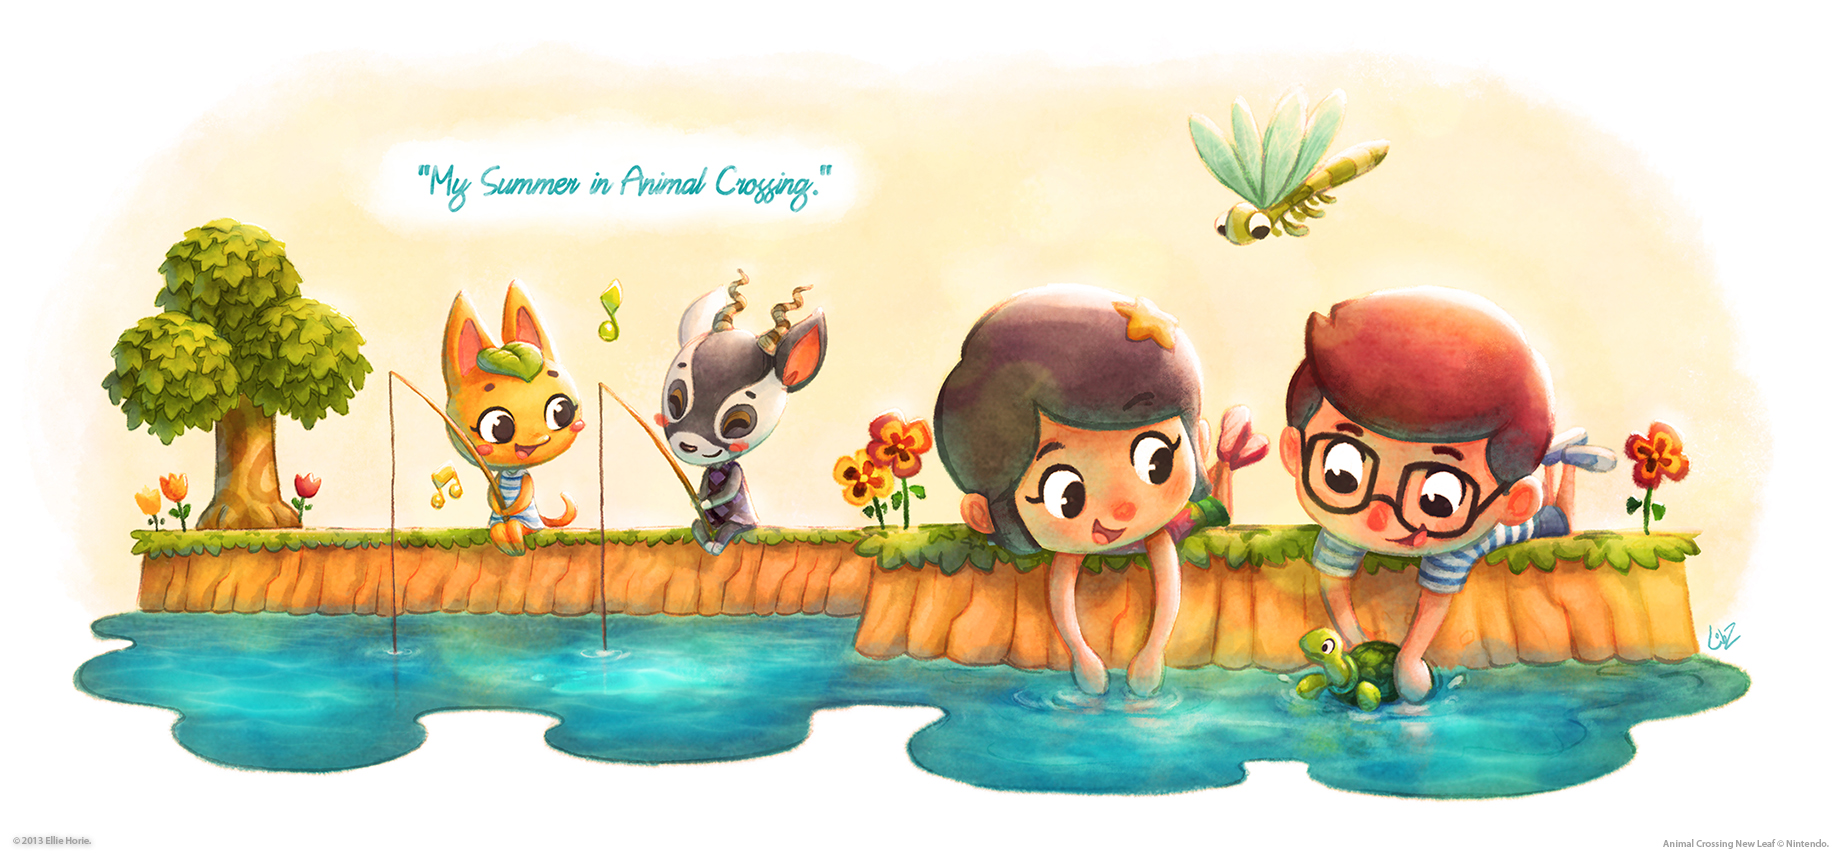 My summer in animal crossing by lilibz on deviantart for Animal crossing mural